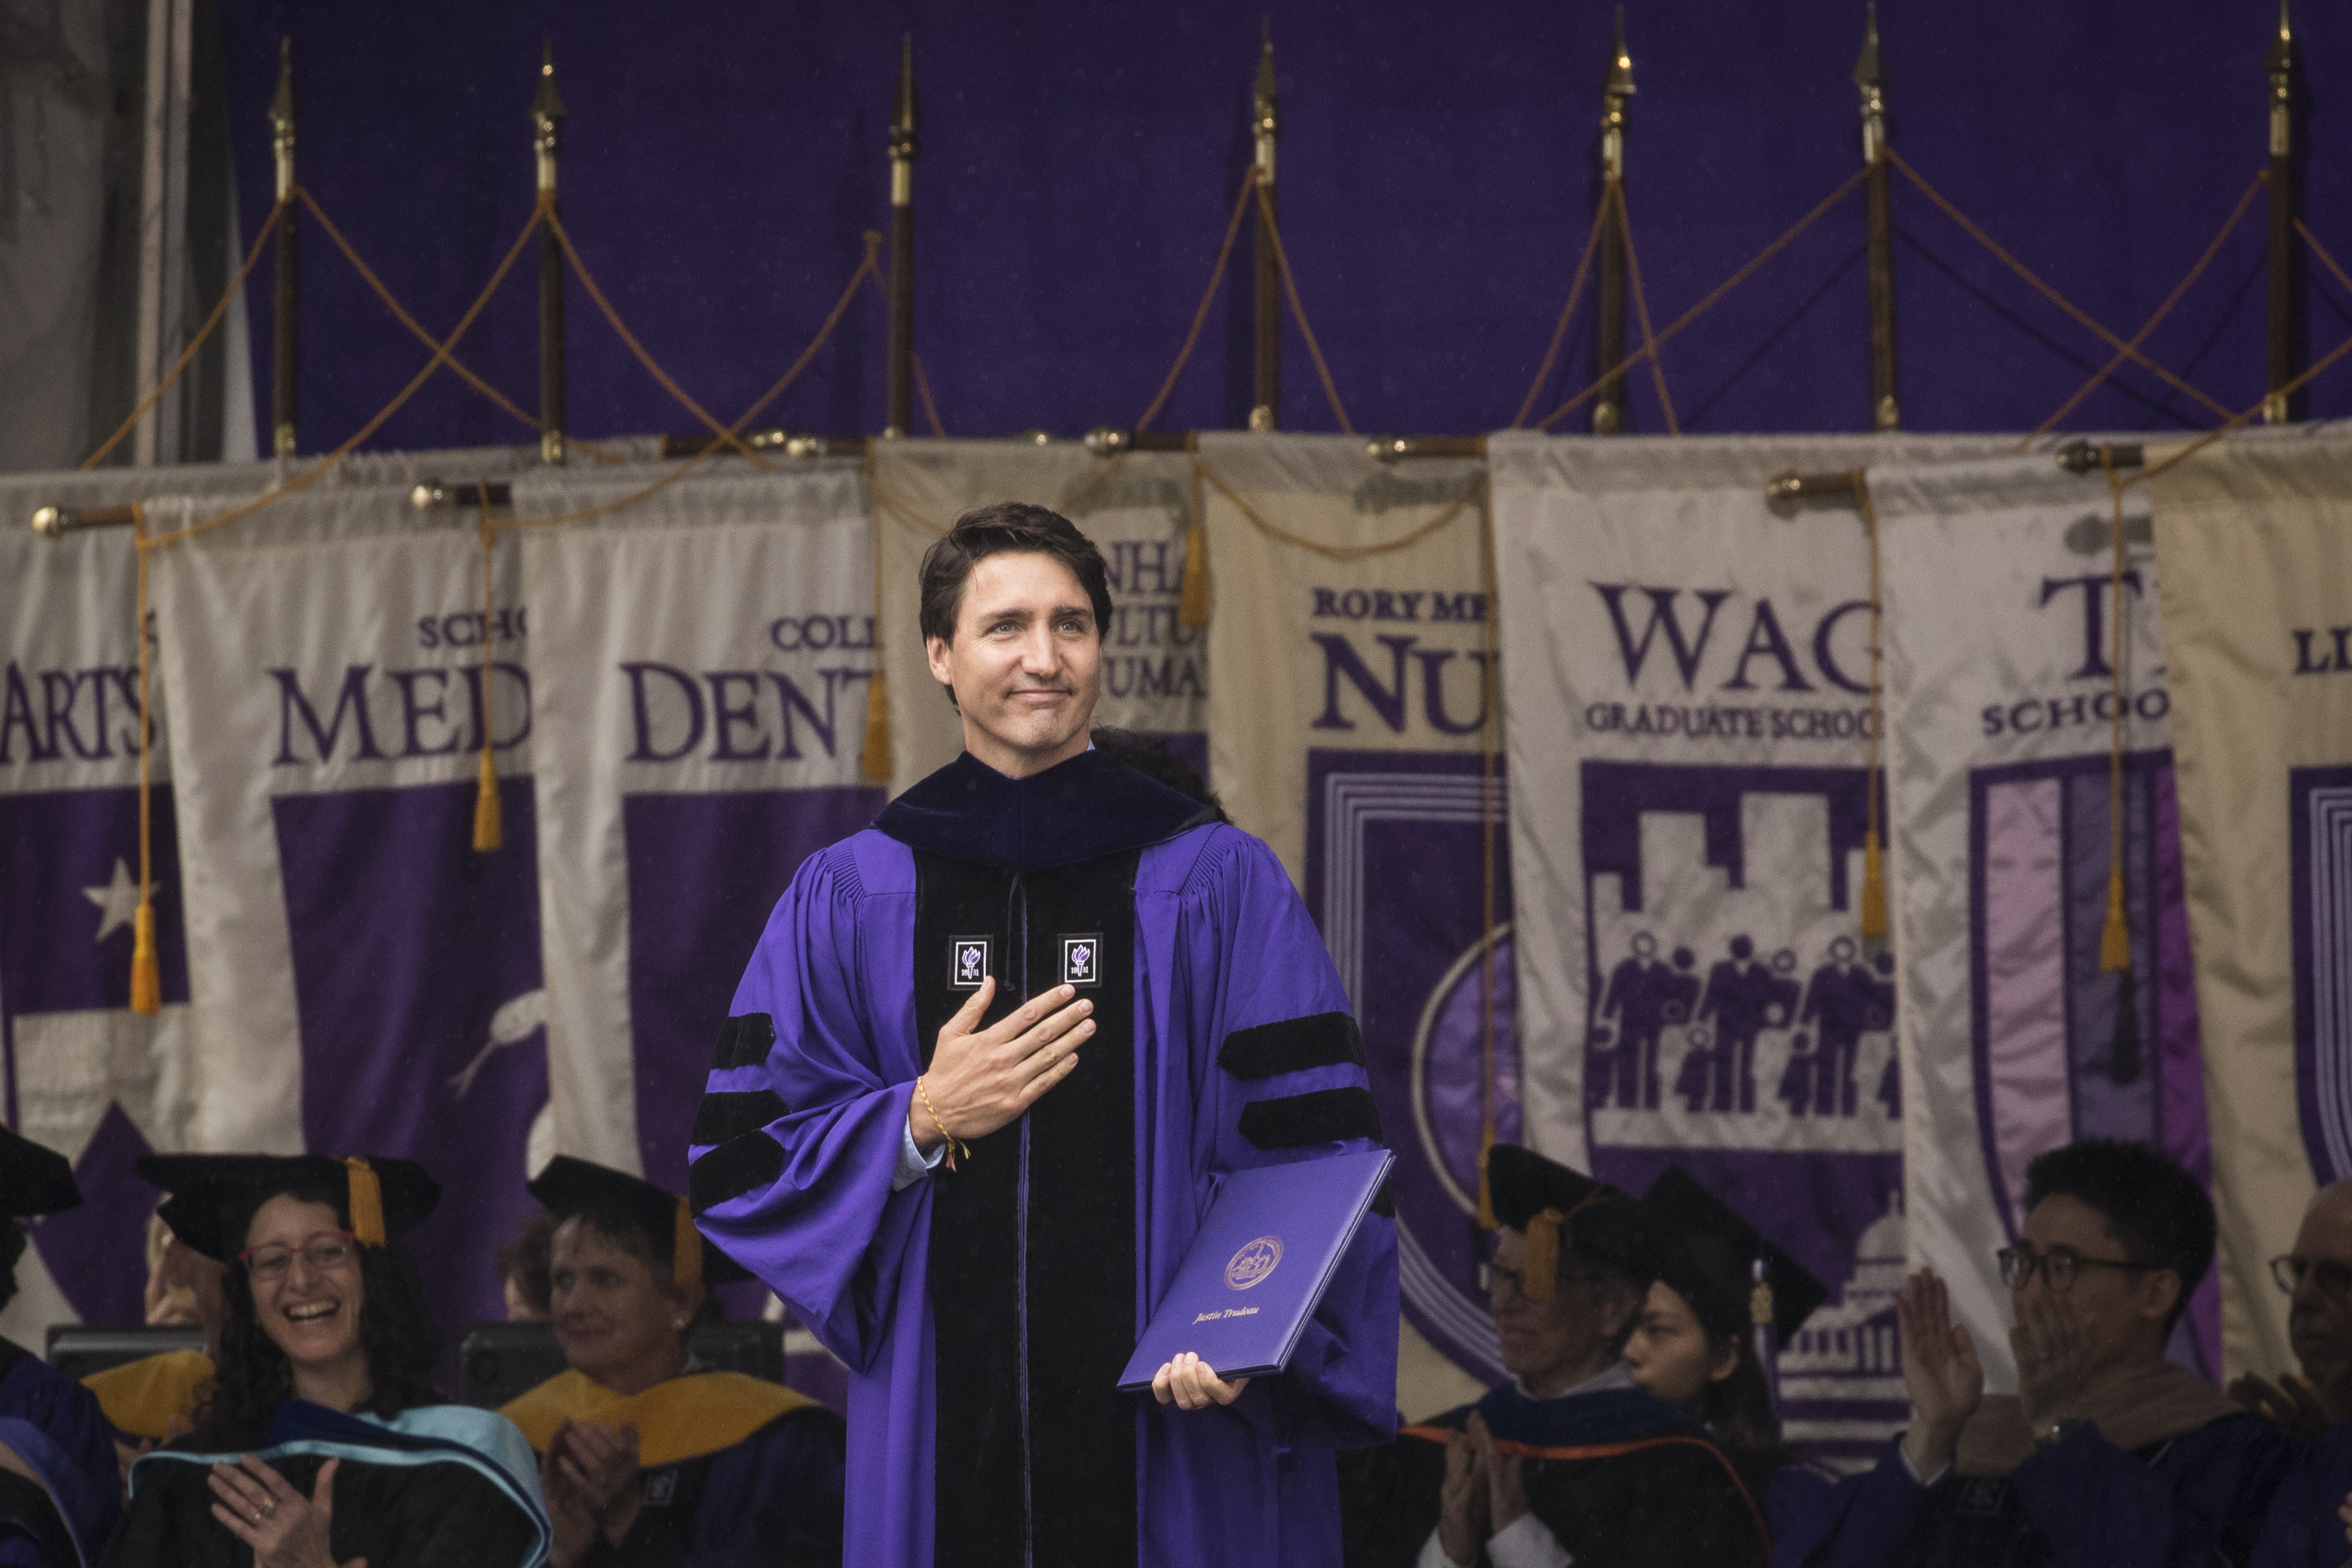 Canadian Prime Minister Justin Trudeau acknowledges the crowd after receiving an honorary doctor of laws degree at New York University's commencement ceremony at Yankee Stadium on May 16, 2018 in the Bronx borough of New York City.